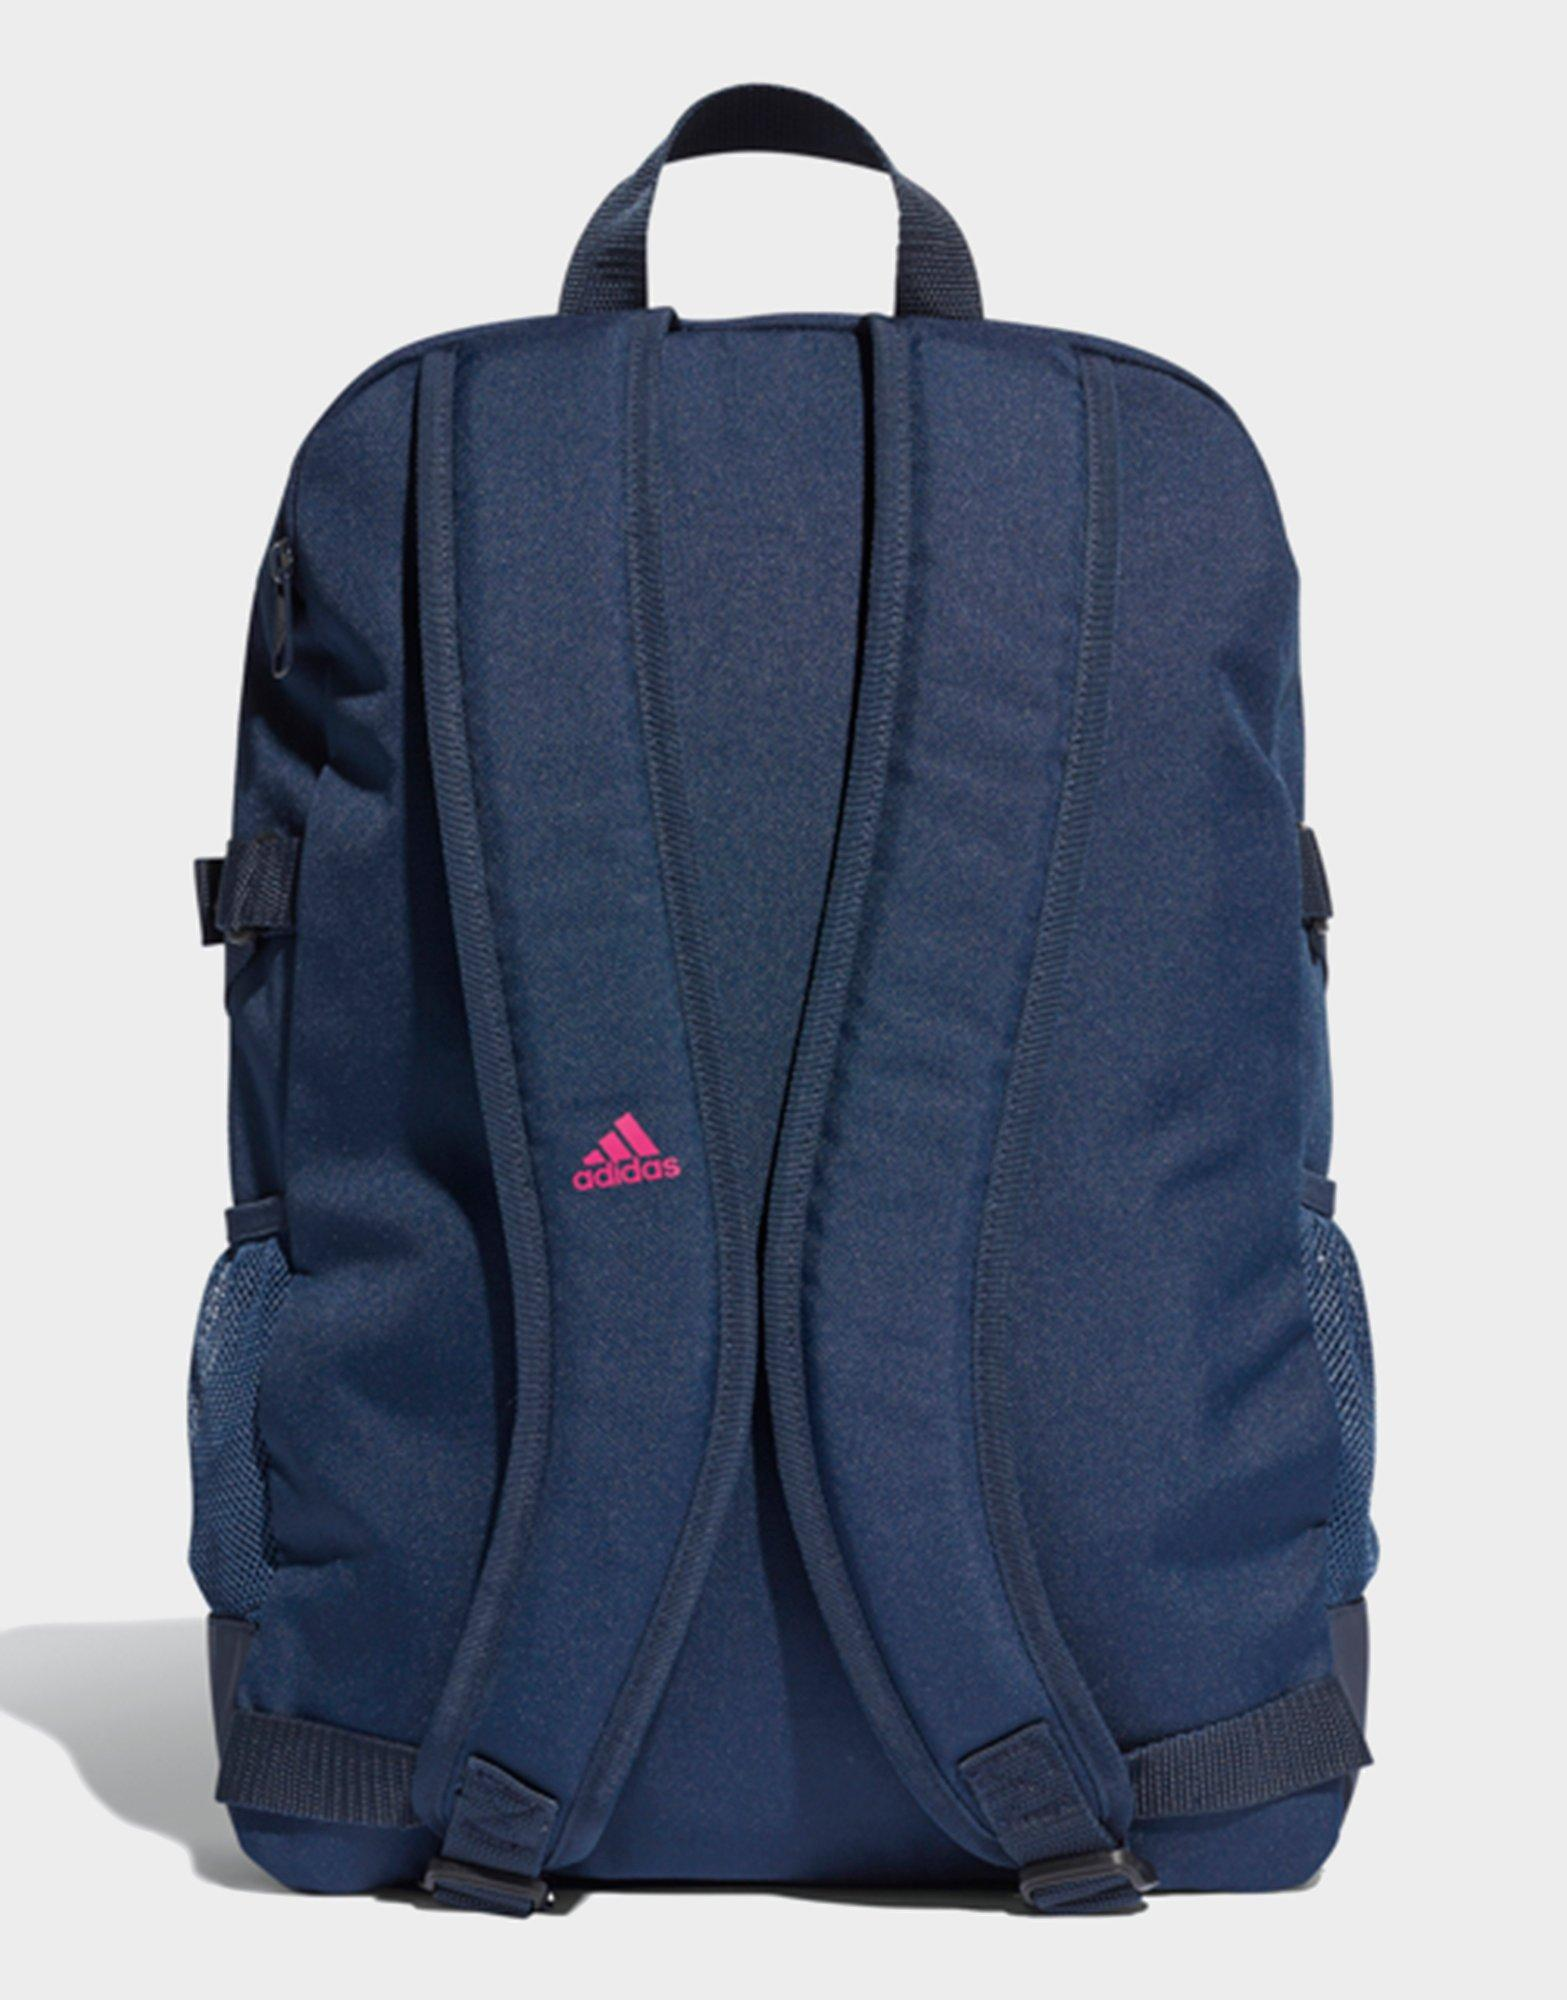 adidas 3-stripes Power Backpack Medium in Blue for Men - Lyst 9179cf1679f85